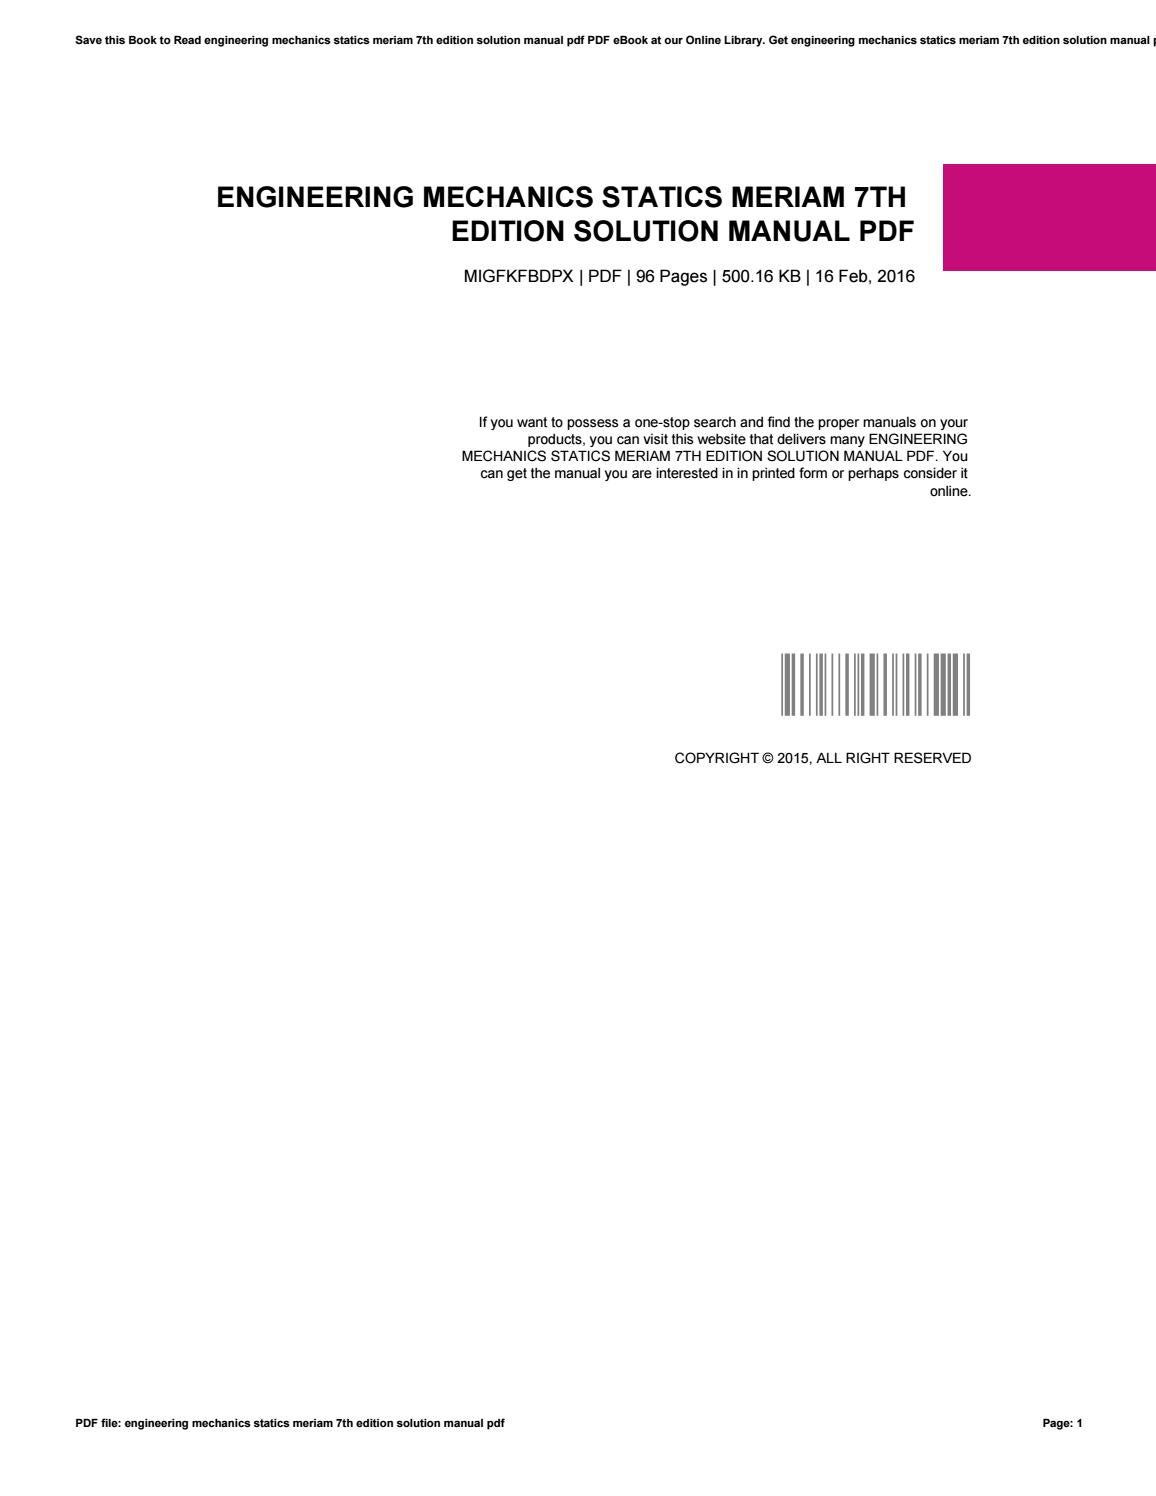 Engineering mechanics statics meriam 7th edition solution manual pdf by  minex-coin42 - issuu